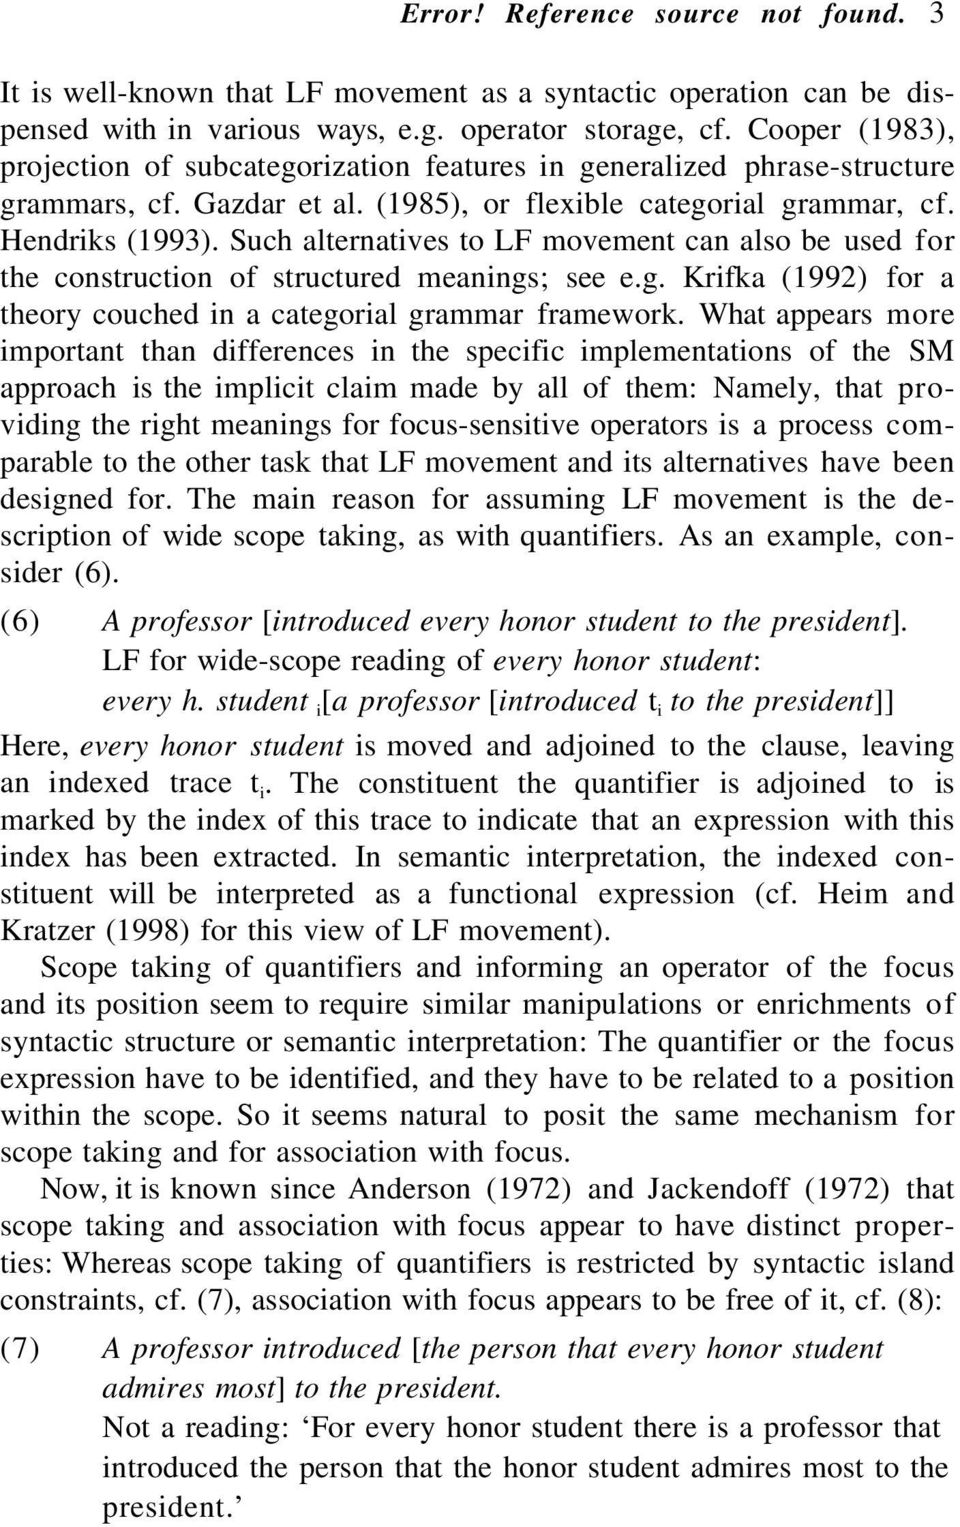 Such alternatives to LF movement can also be used for the construction of structured meanings; see e.g. Krifka (1992) for a theory couched in a categorial grammar framework.